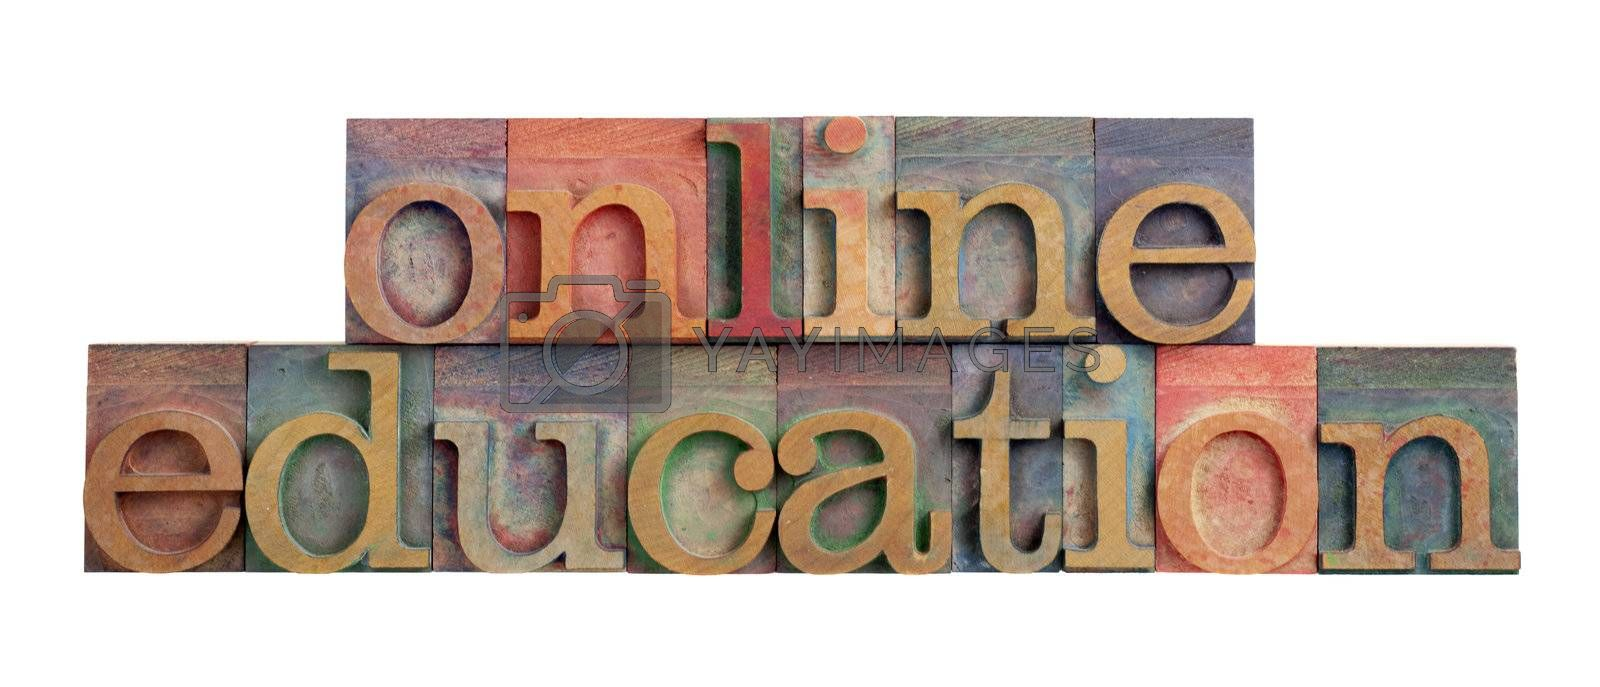 online education headline in vintage wooden letterpress type blocks, stained by color ink, isolated on white